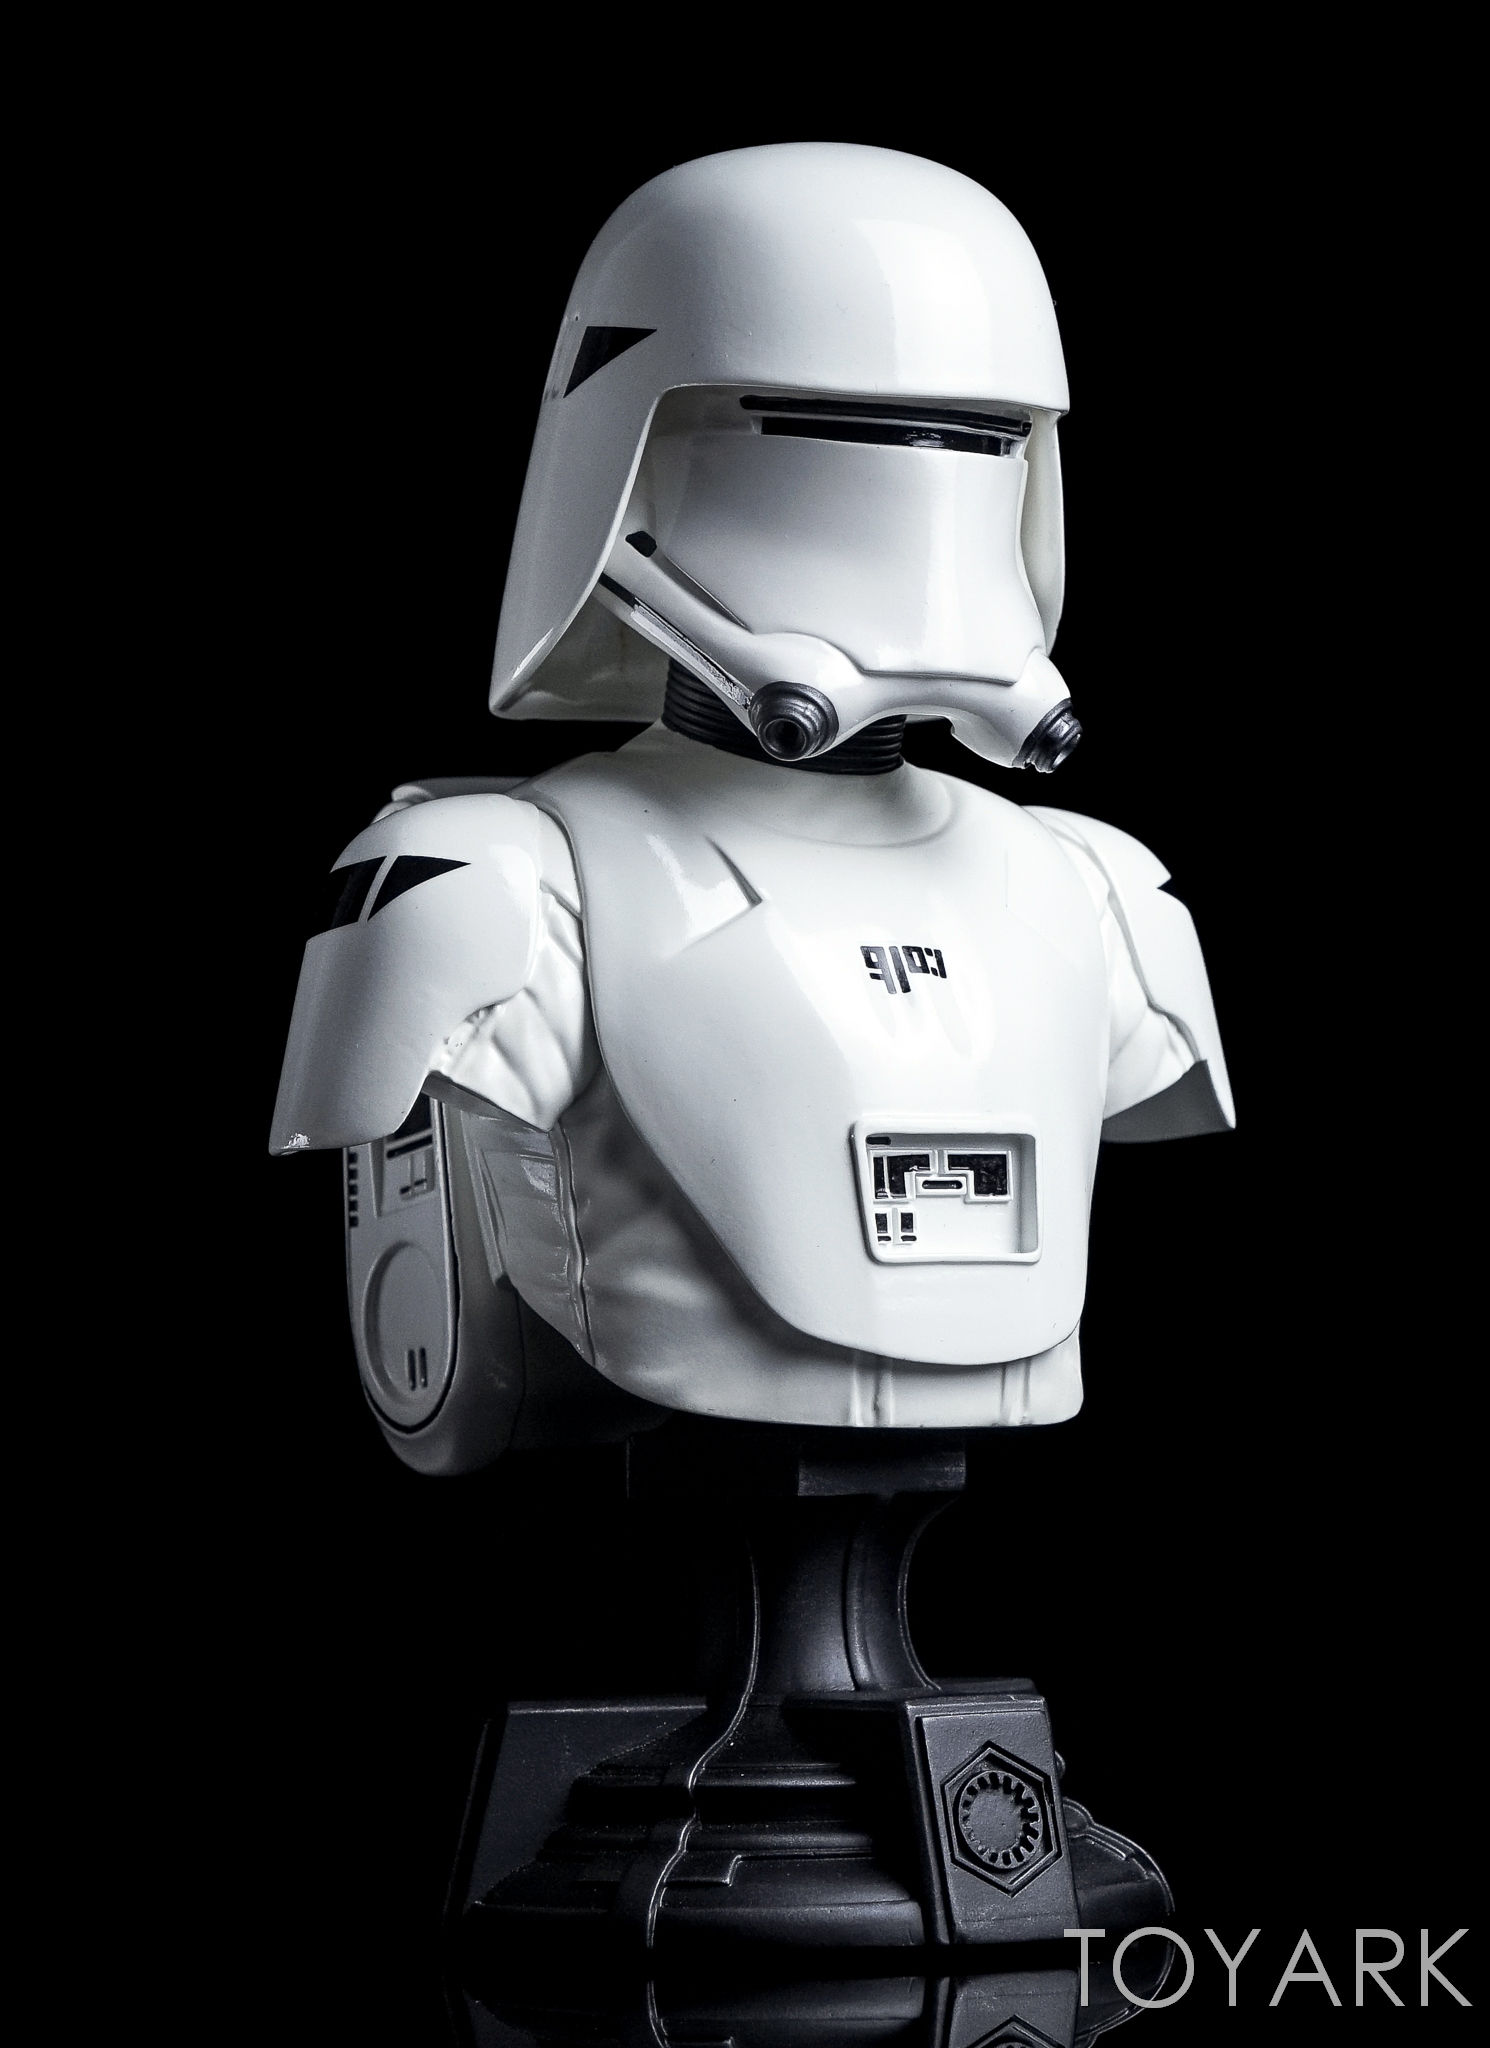 http://news.toyark.com/wp-content/uploads/sites/4/2016/12/Force-Awakens-Snowtrooper-Classic-Bust-020.jpg